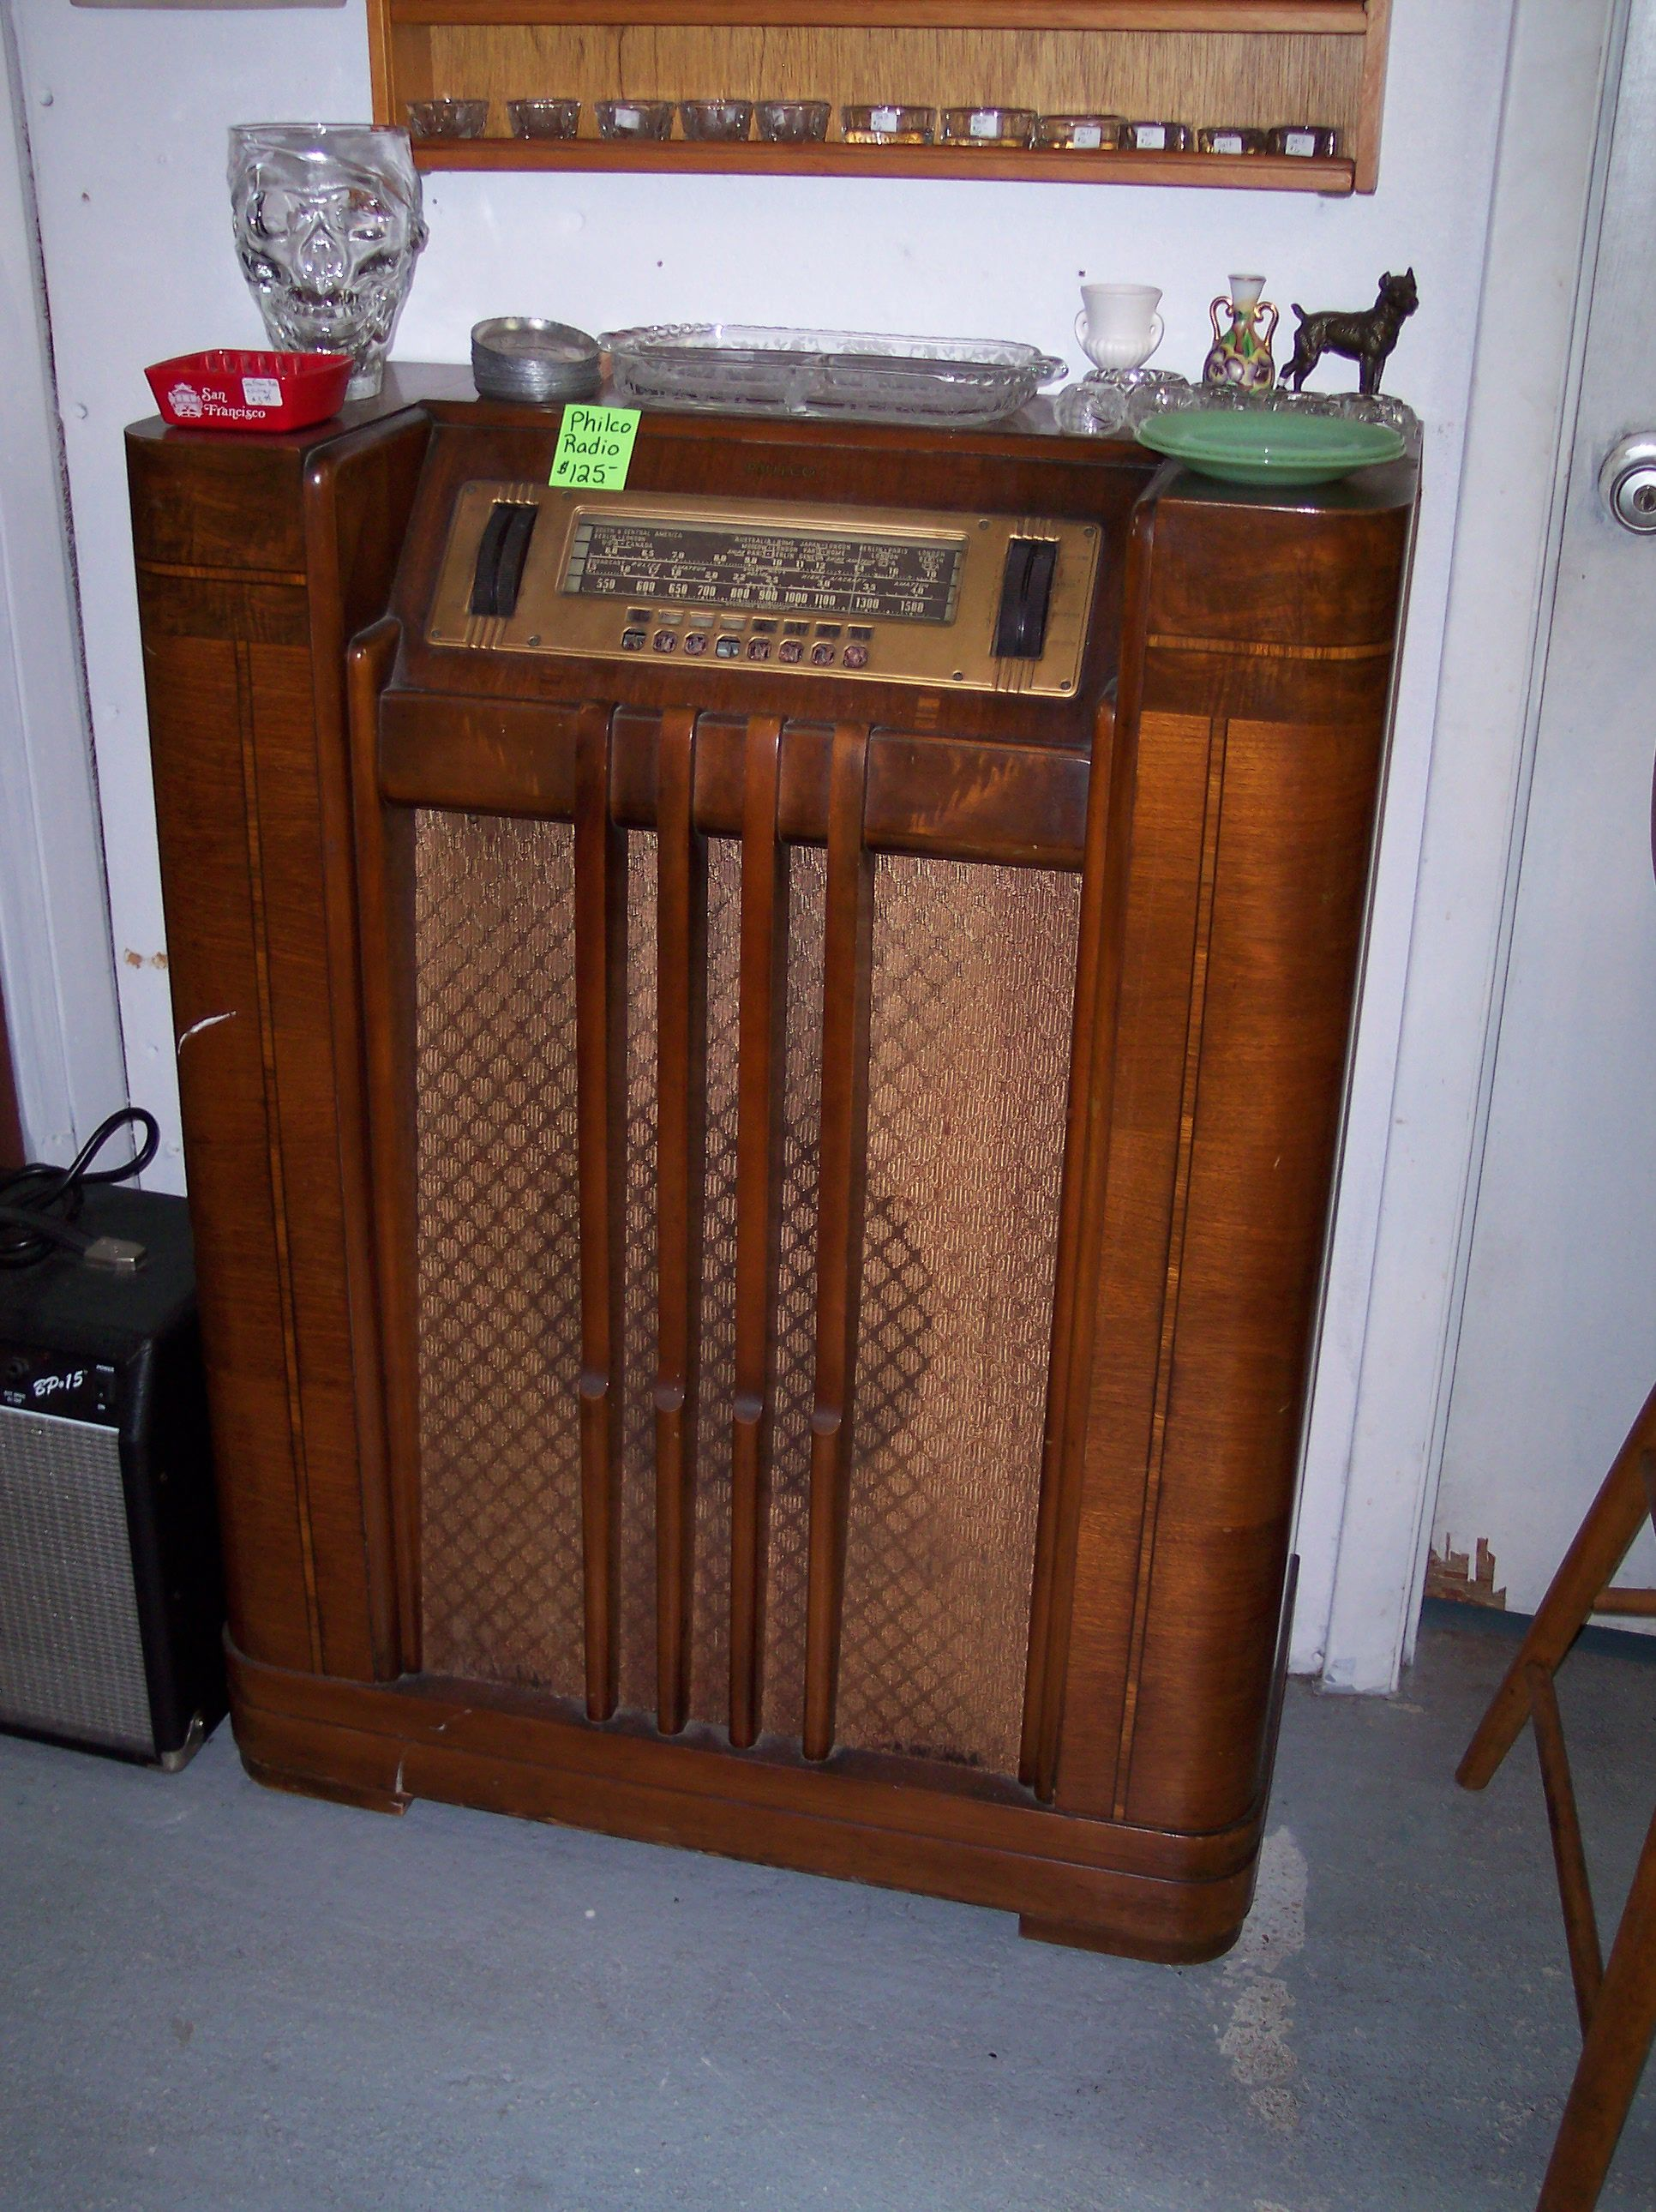 Philco Radio Console Radios Vintage Antique Radio